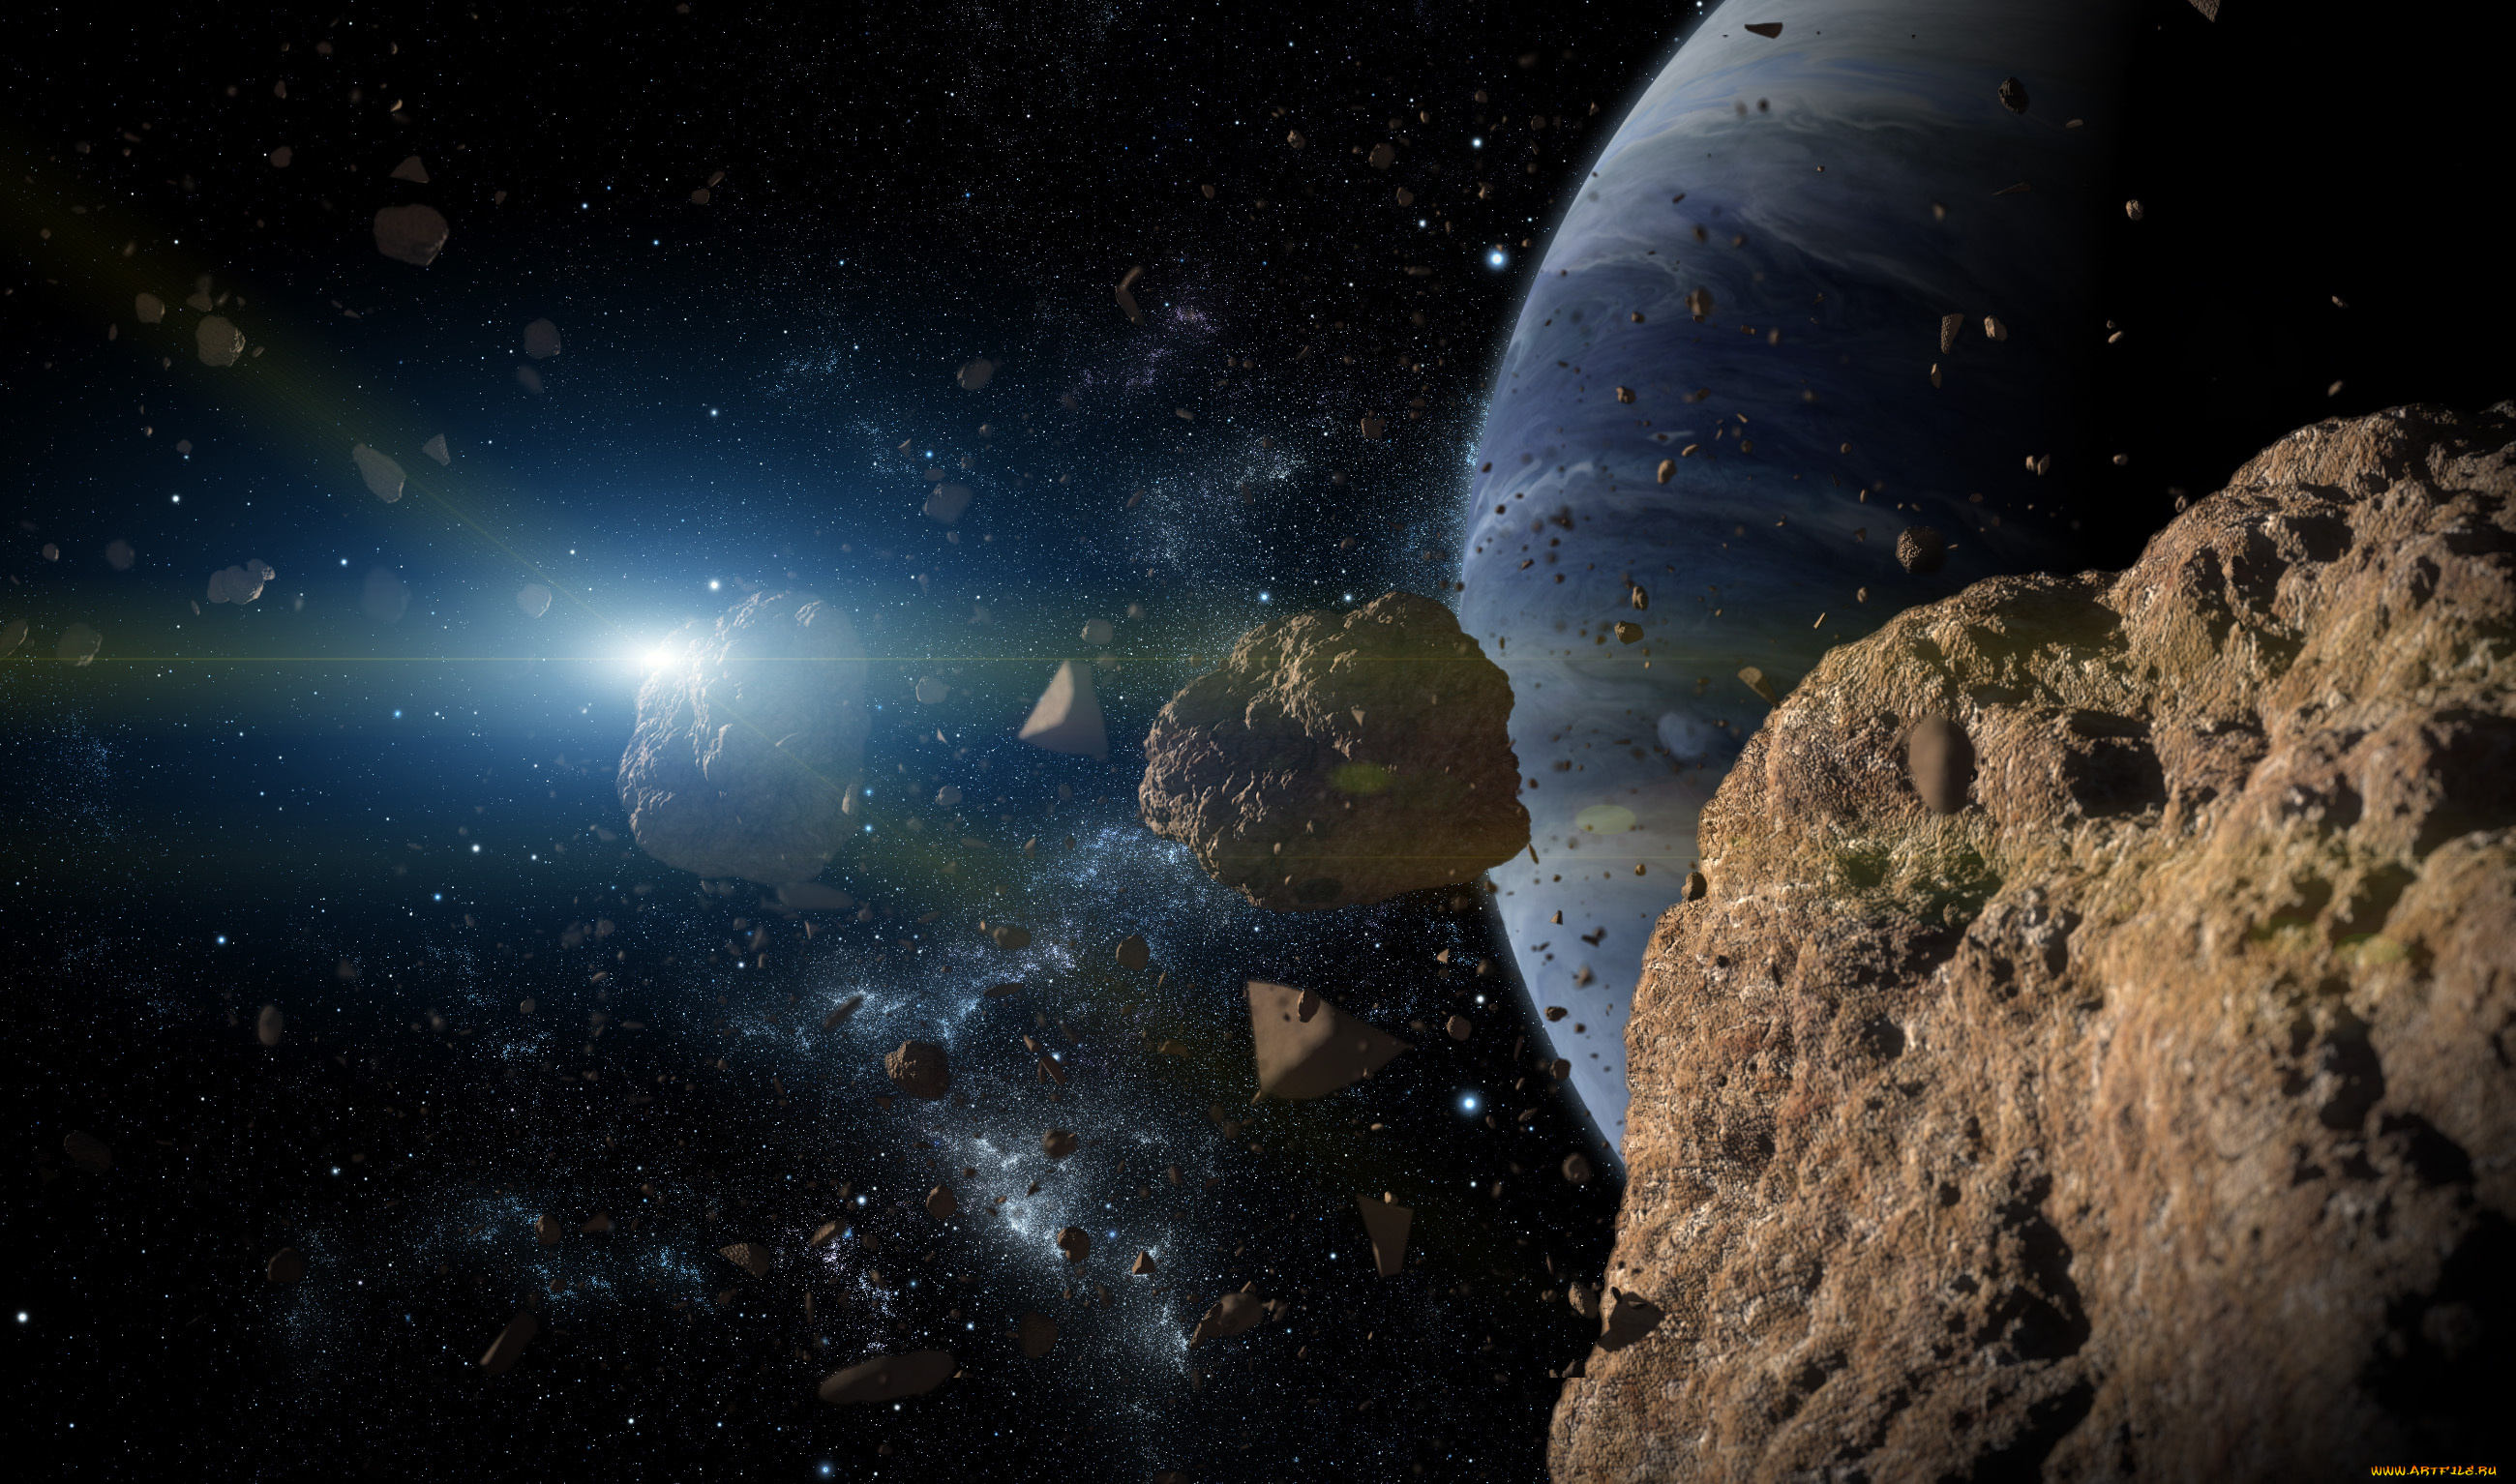 asteroid or comet weird blue space rock phaethon gets a - HD2600×1494